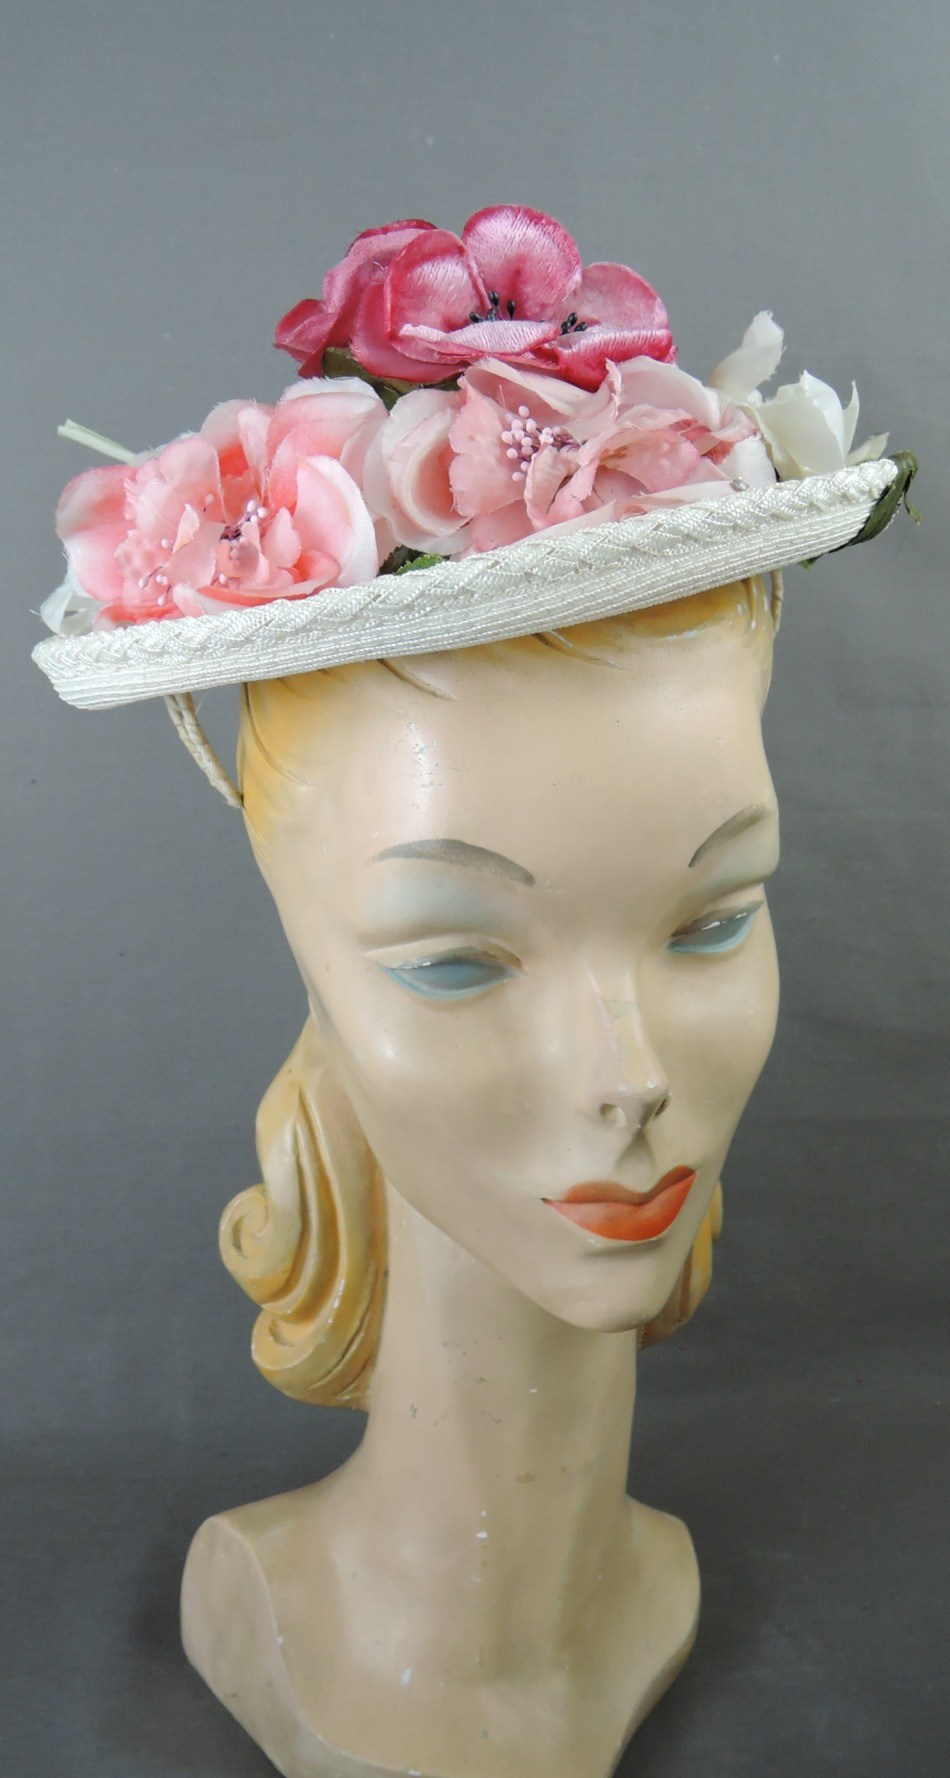 Vintage Pink & Floral Straw Hat 1950s Topper, fits any size